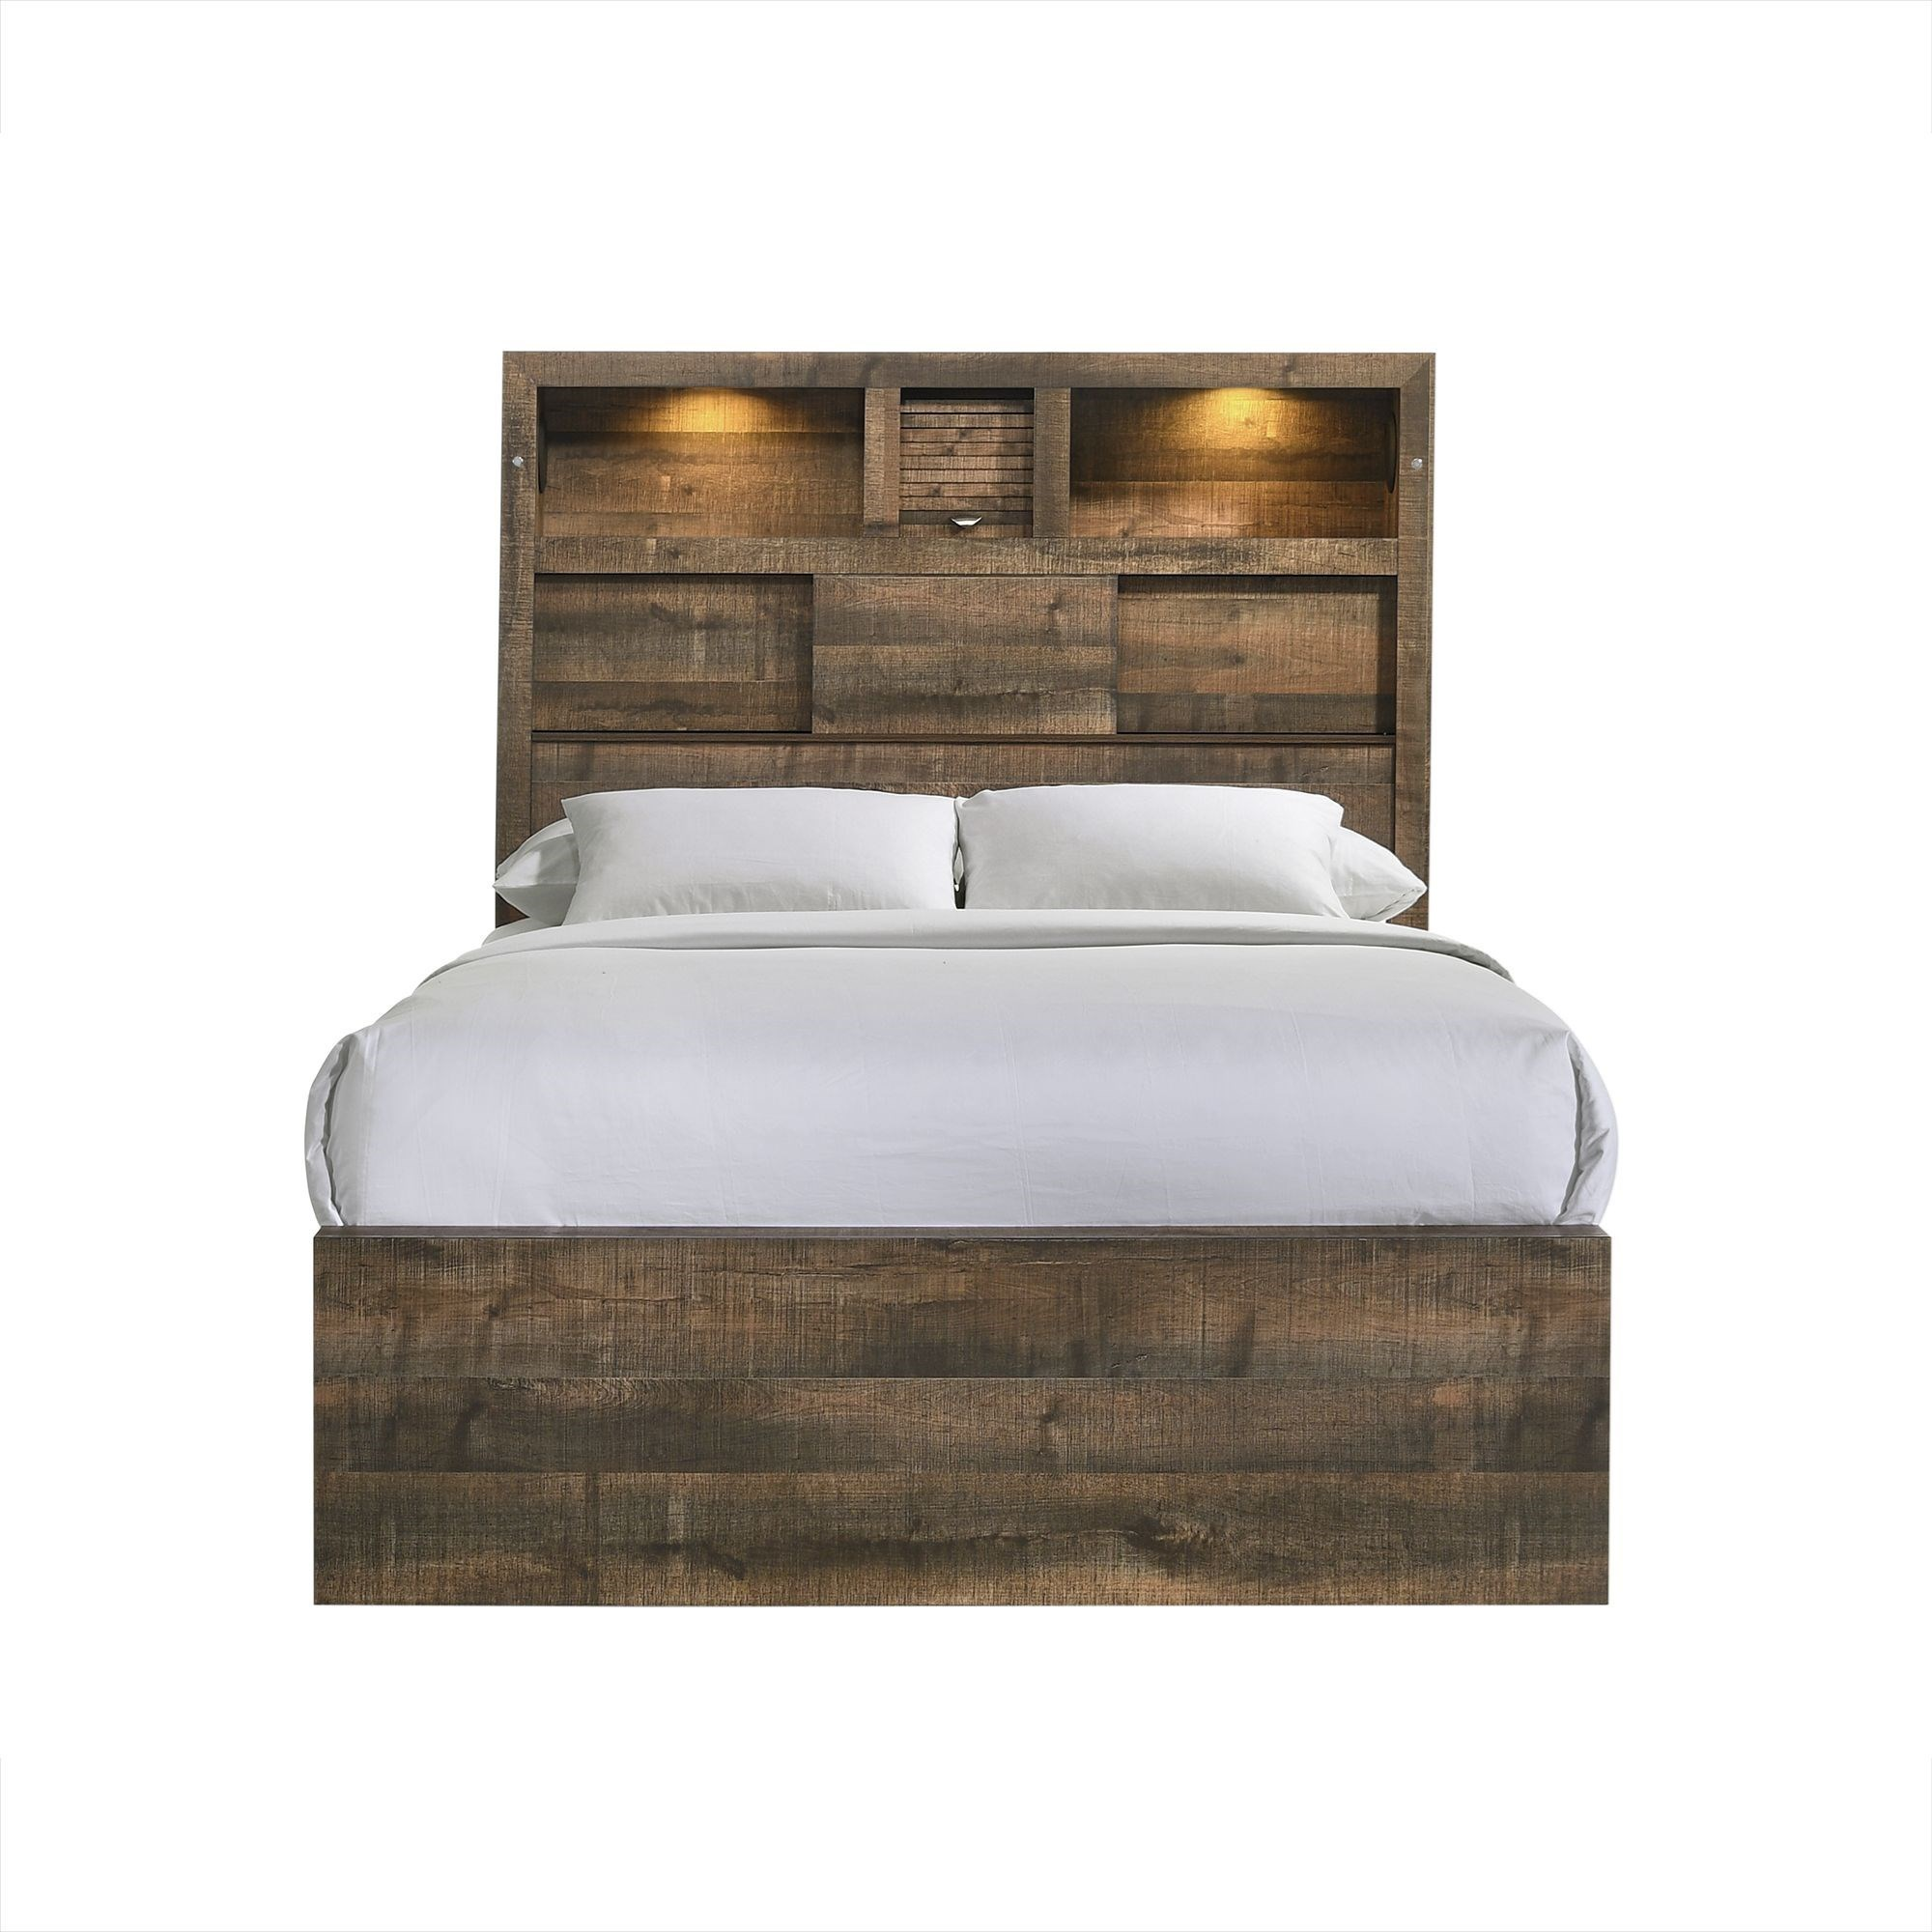 Bailey Full Bookcase Bed by Elements International at Smart Buy Furniture